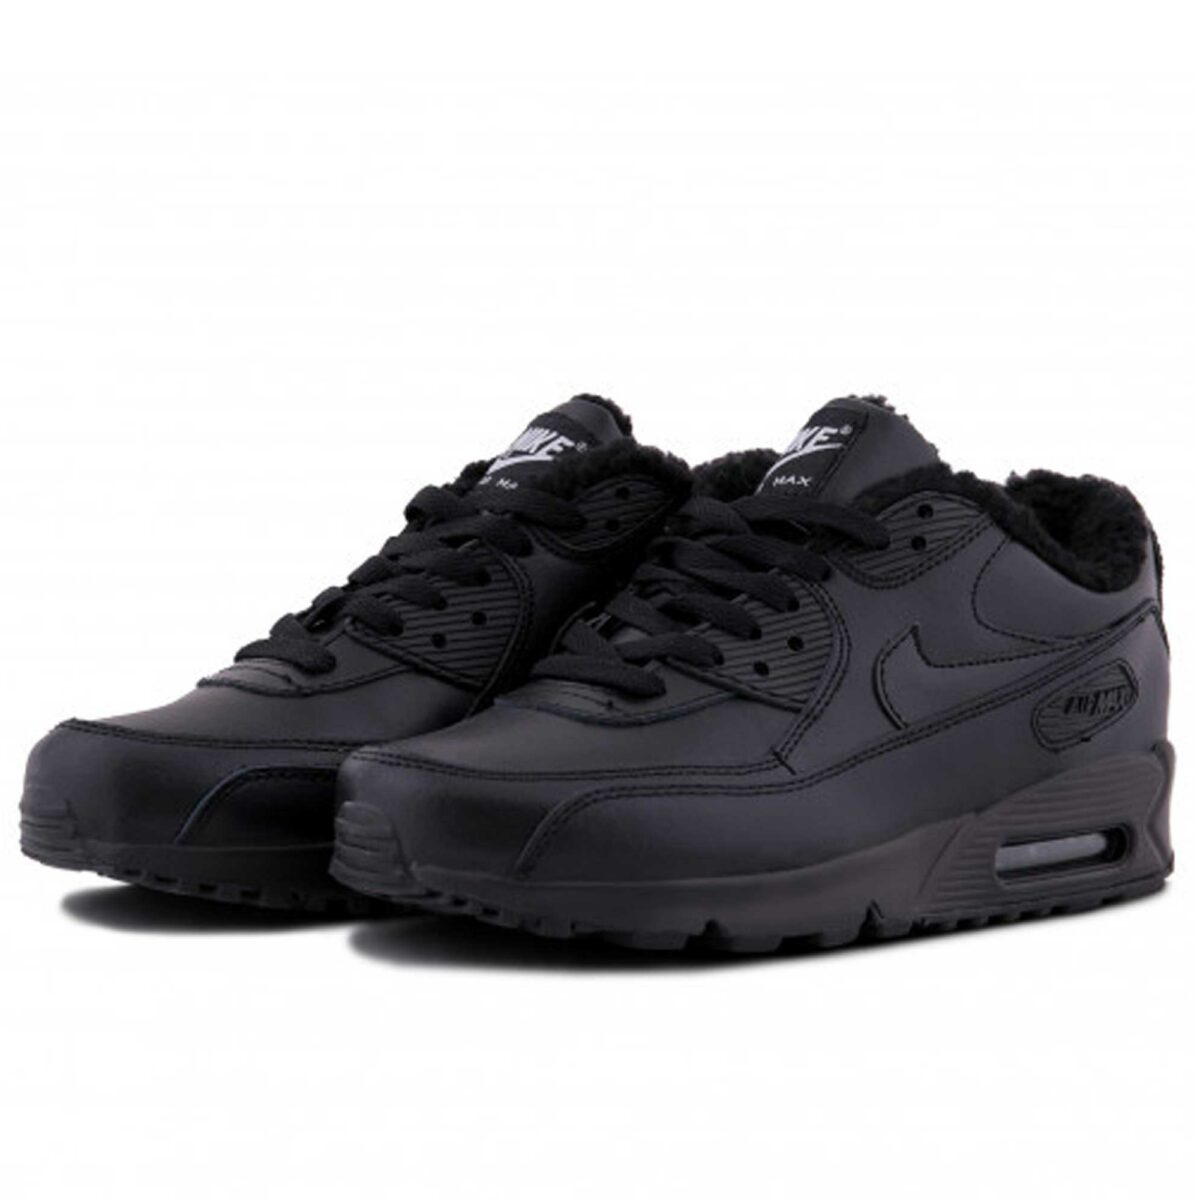 nike air max 90 LTR all black winter купить